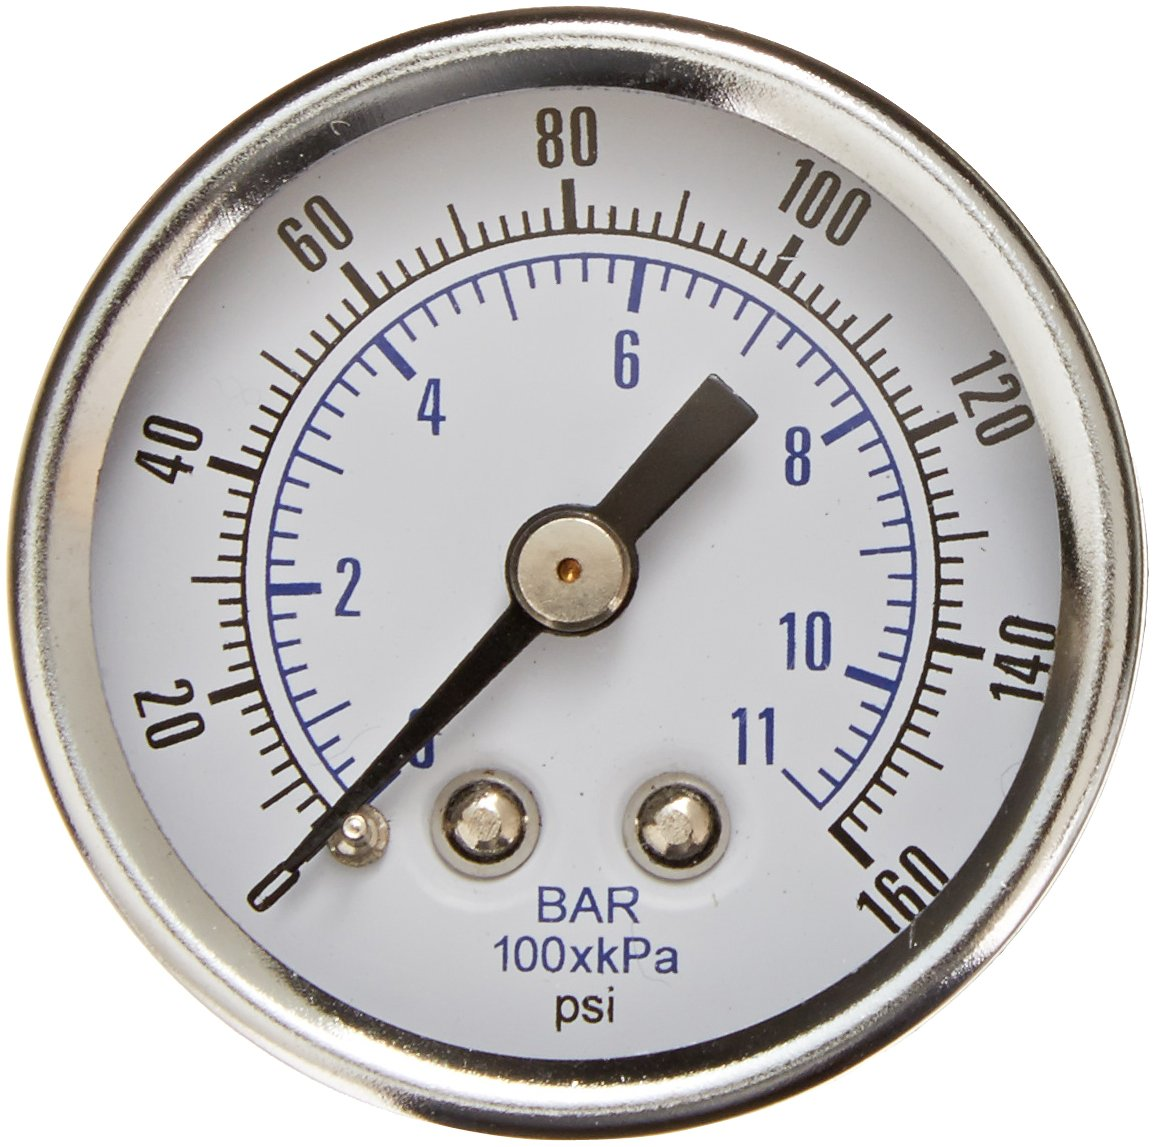 PIC Gauge 102D-158F 1.5 Dial 0//160 psi Range Chrome Bezel Brass Internals Center Back Mount Dry Pressure Gauge with a Black Steel Case and Plastic Lens 1//8 Male NPT Connection Size